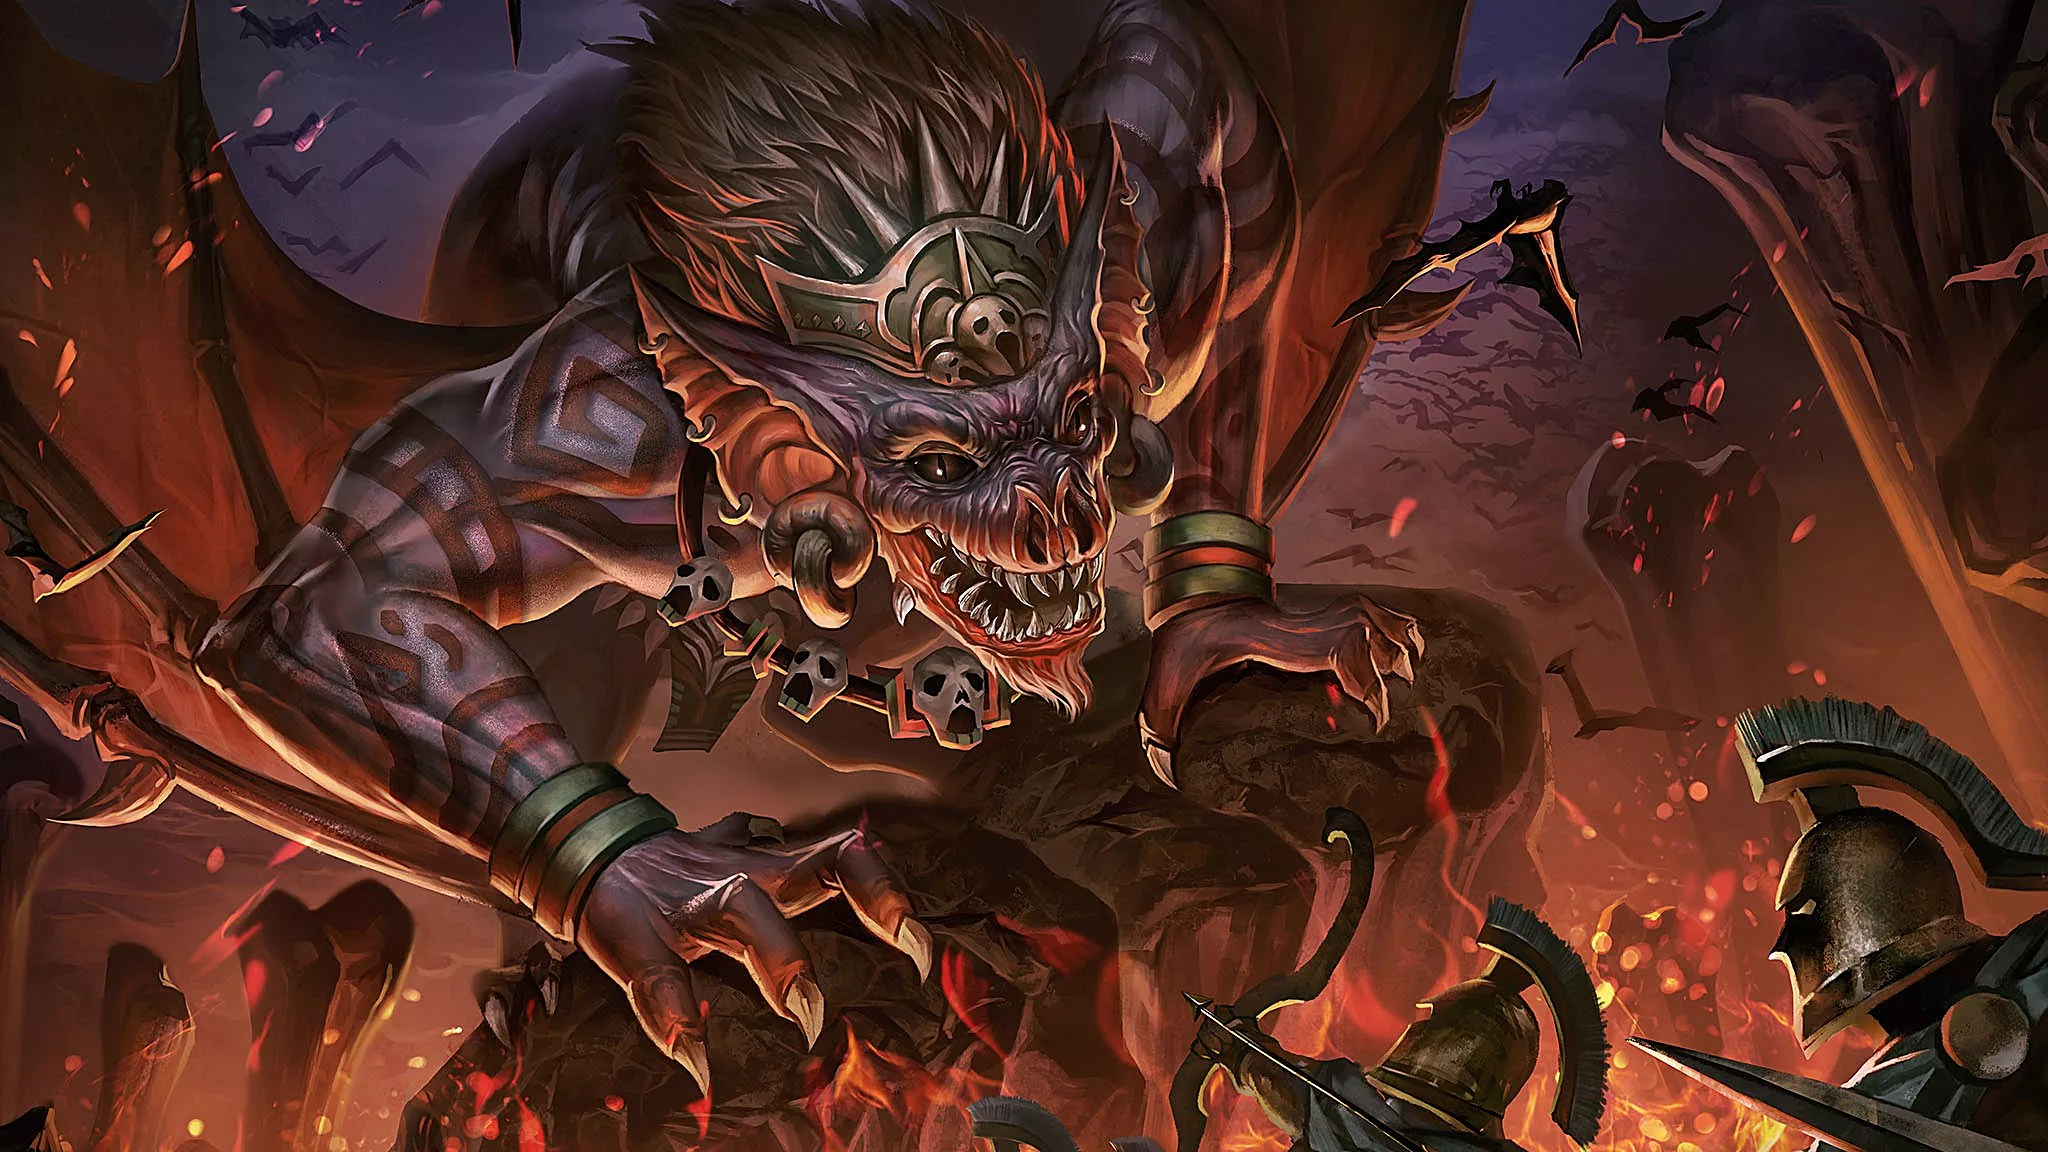 Danger 3d Wallpaper Smite Camazotz Build Guide Going Cama Ndo With The Deadly